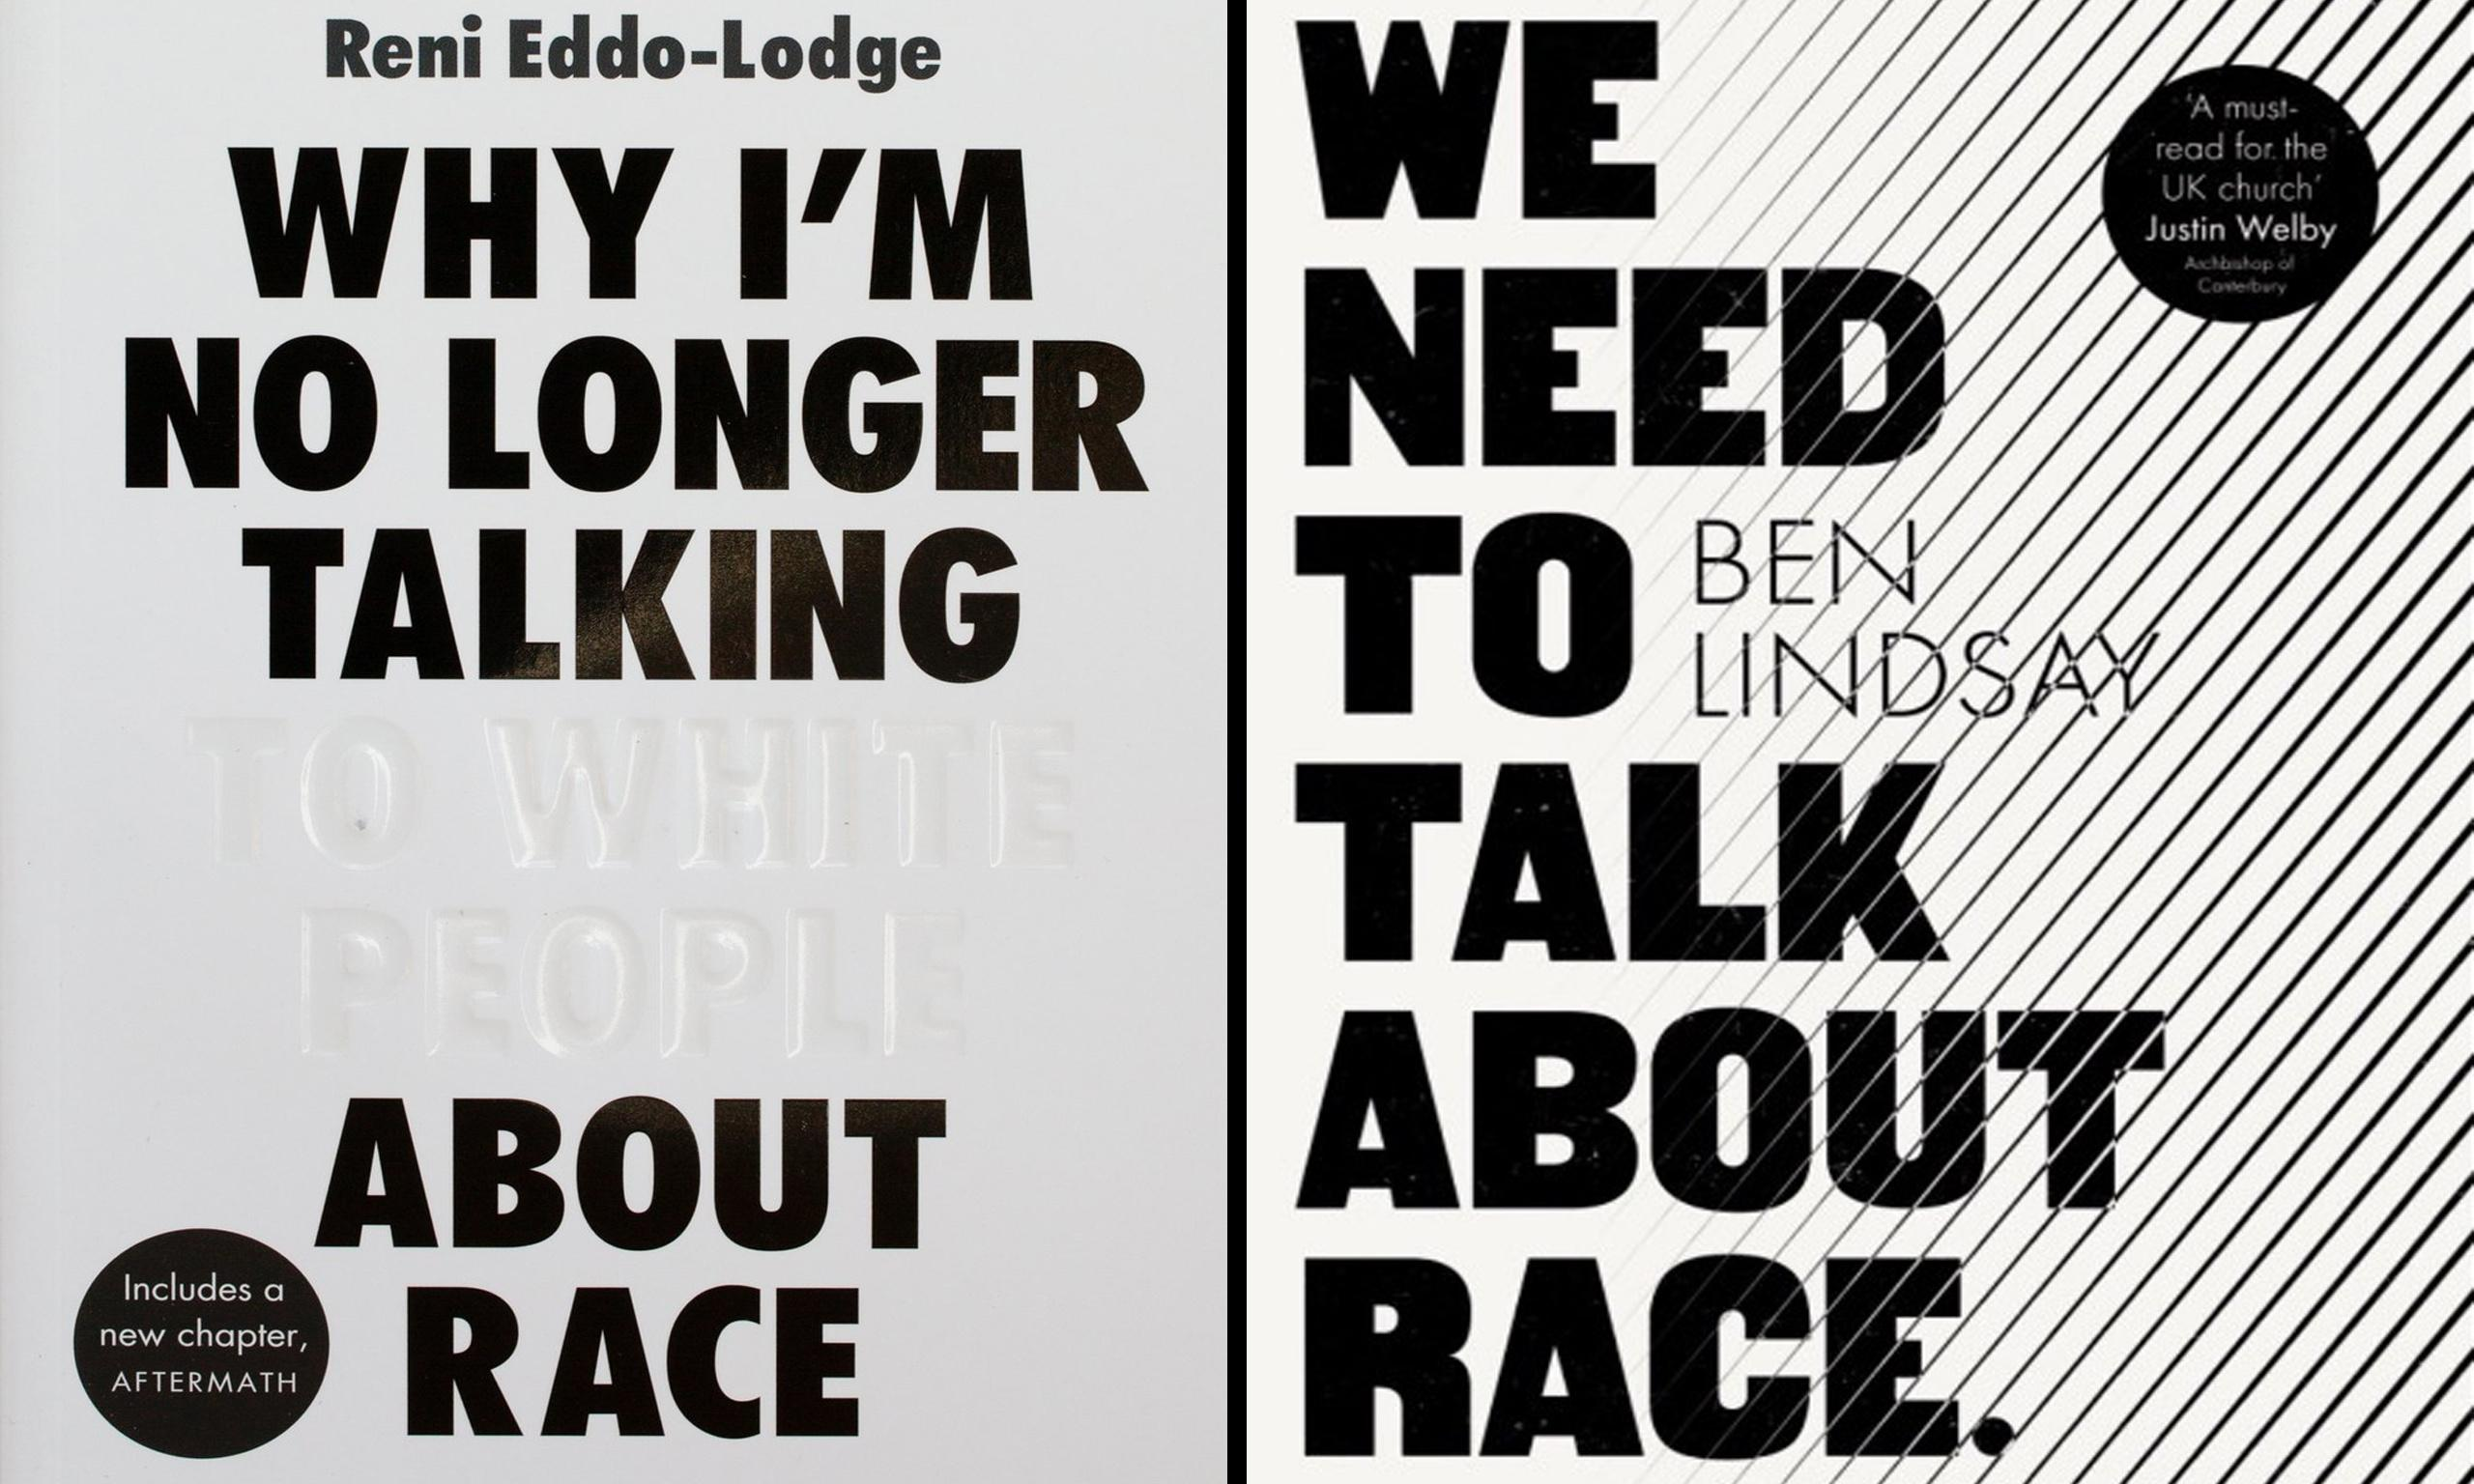 Publisher accused of 'ripping off' best-selling book on racism